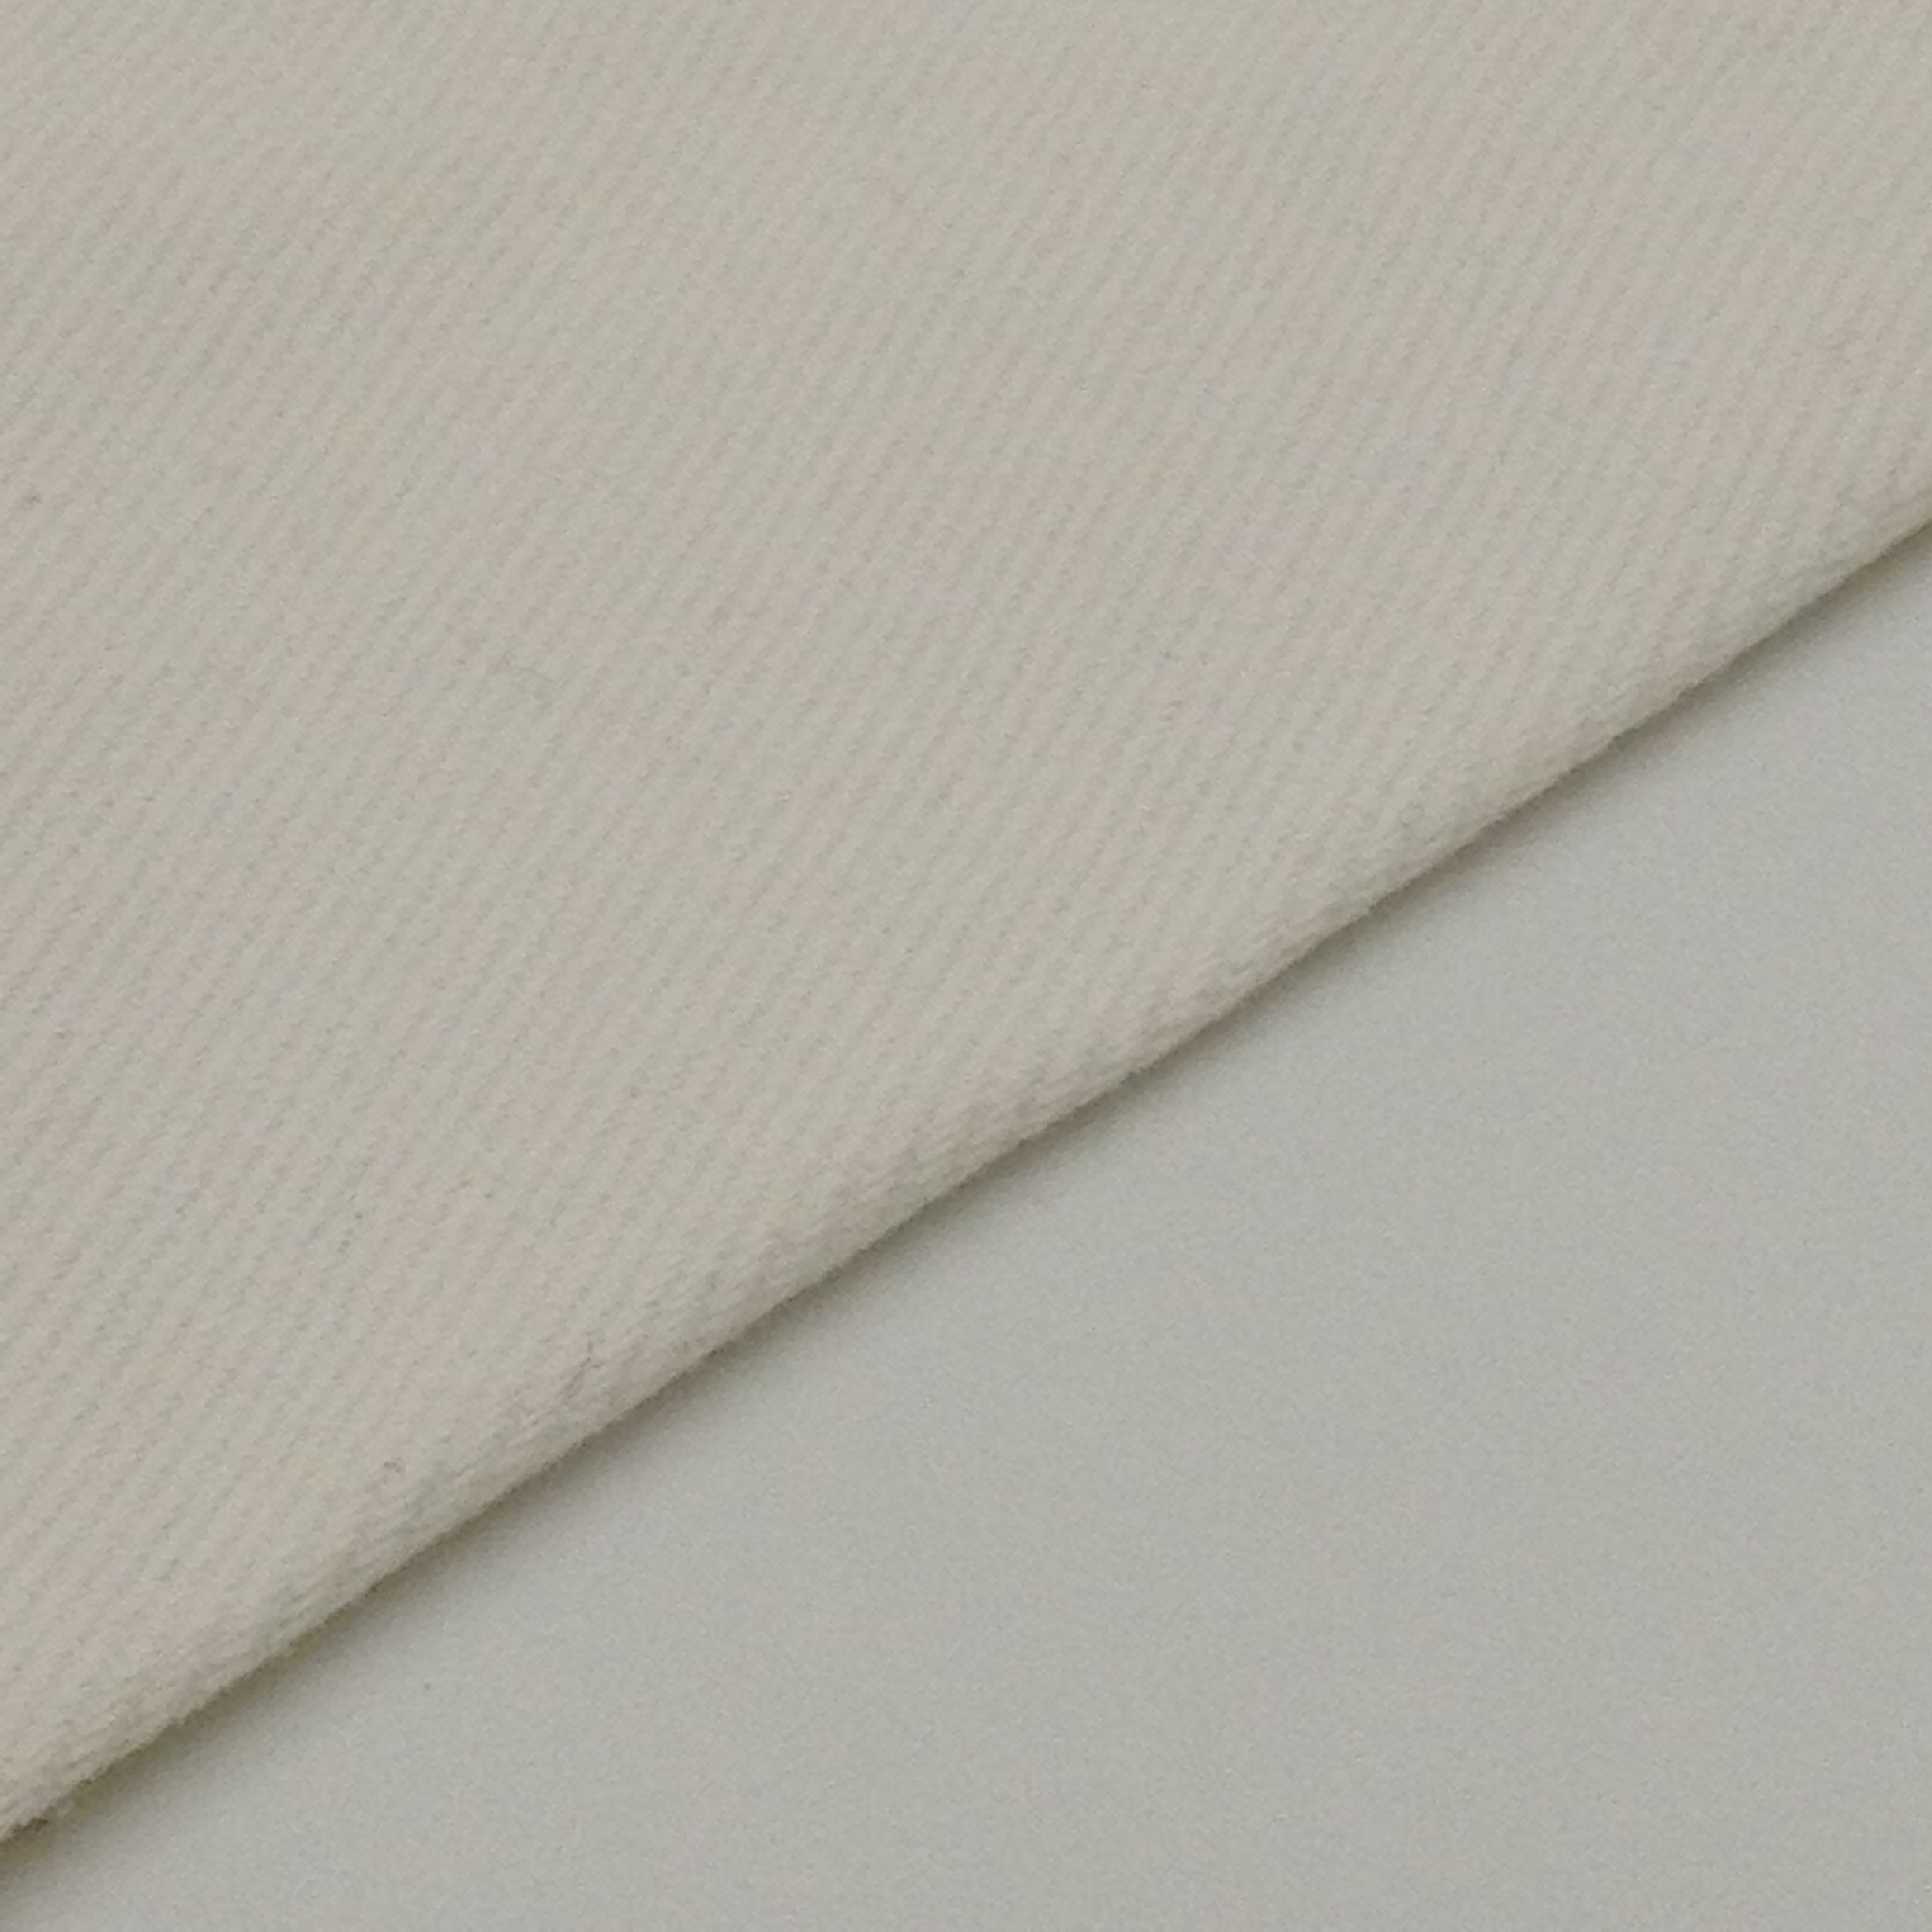 Replace Cover for IKEA Ektorp Chaise Lounge Left Cover, 100% Cotton Sofa Cover for Ektorp Chaise Lounge Left Cover (White